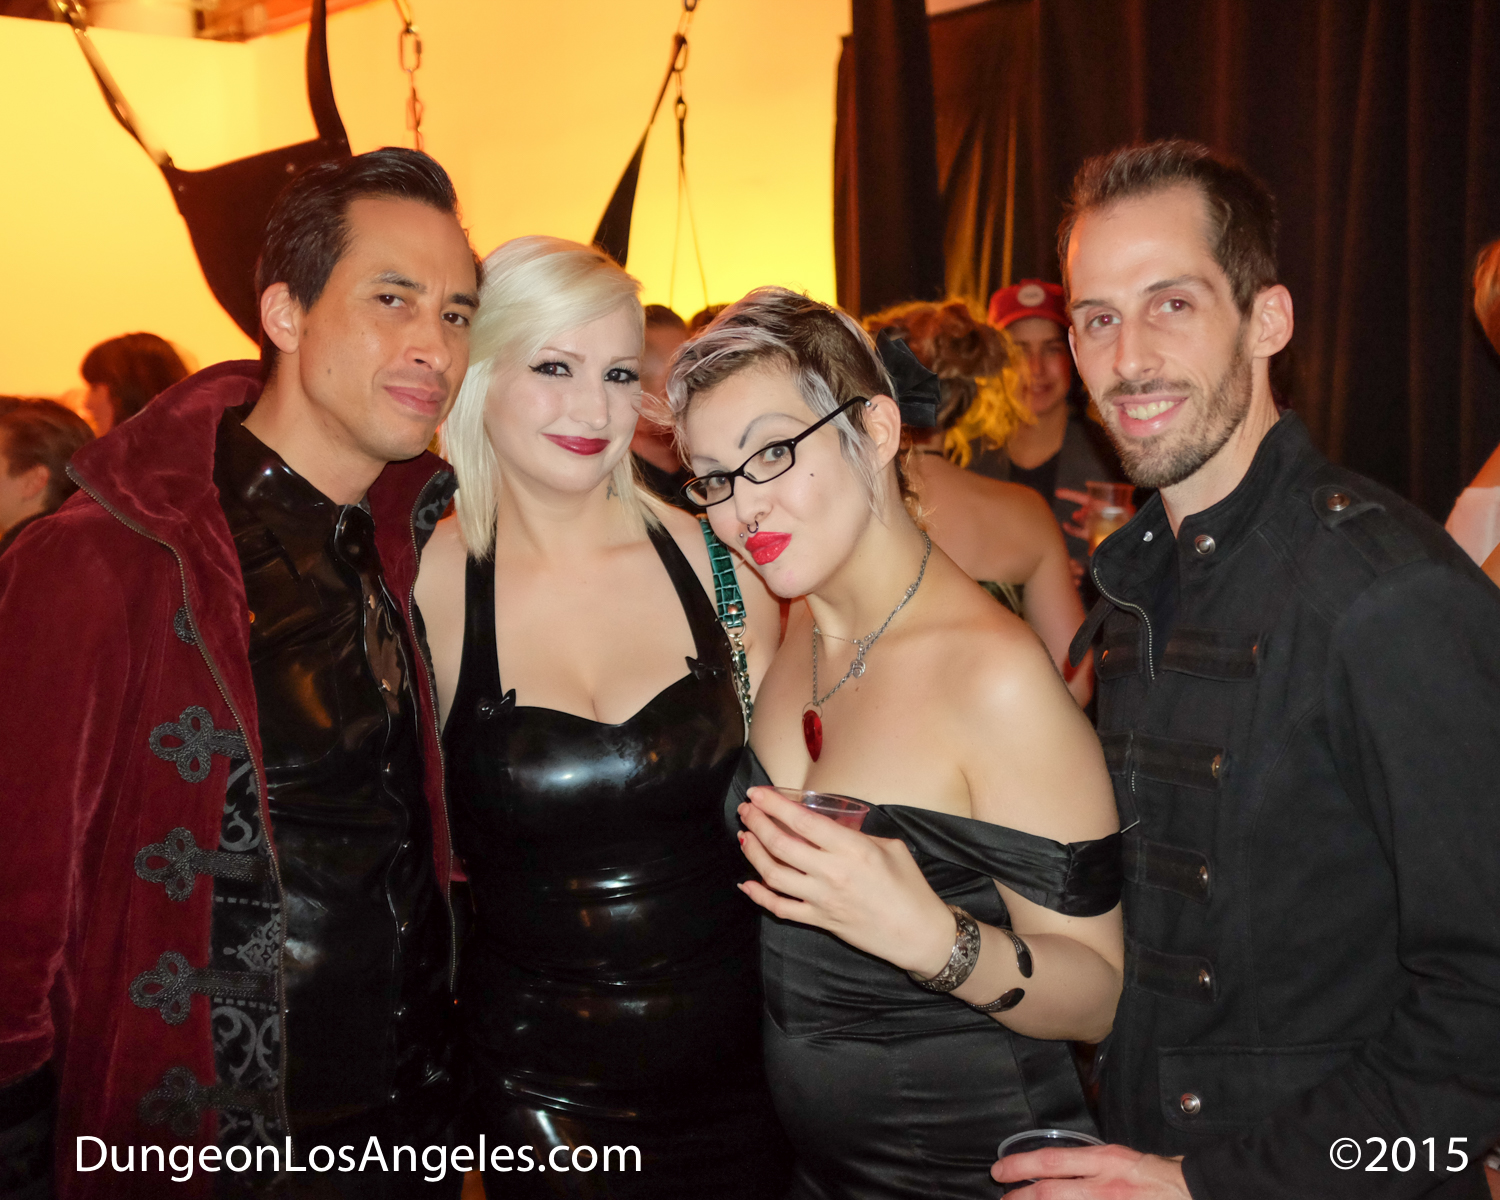 Los Angeles Dungeon| Dungeon West